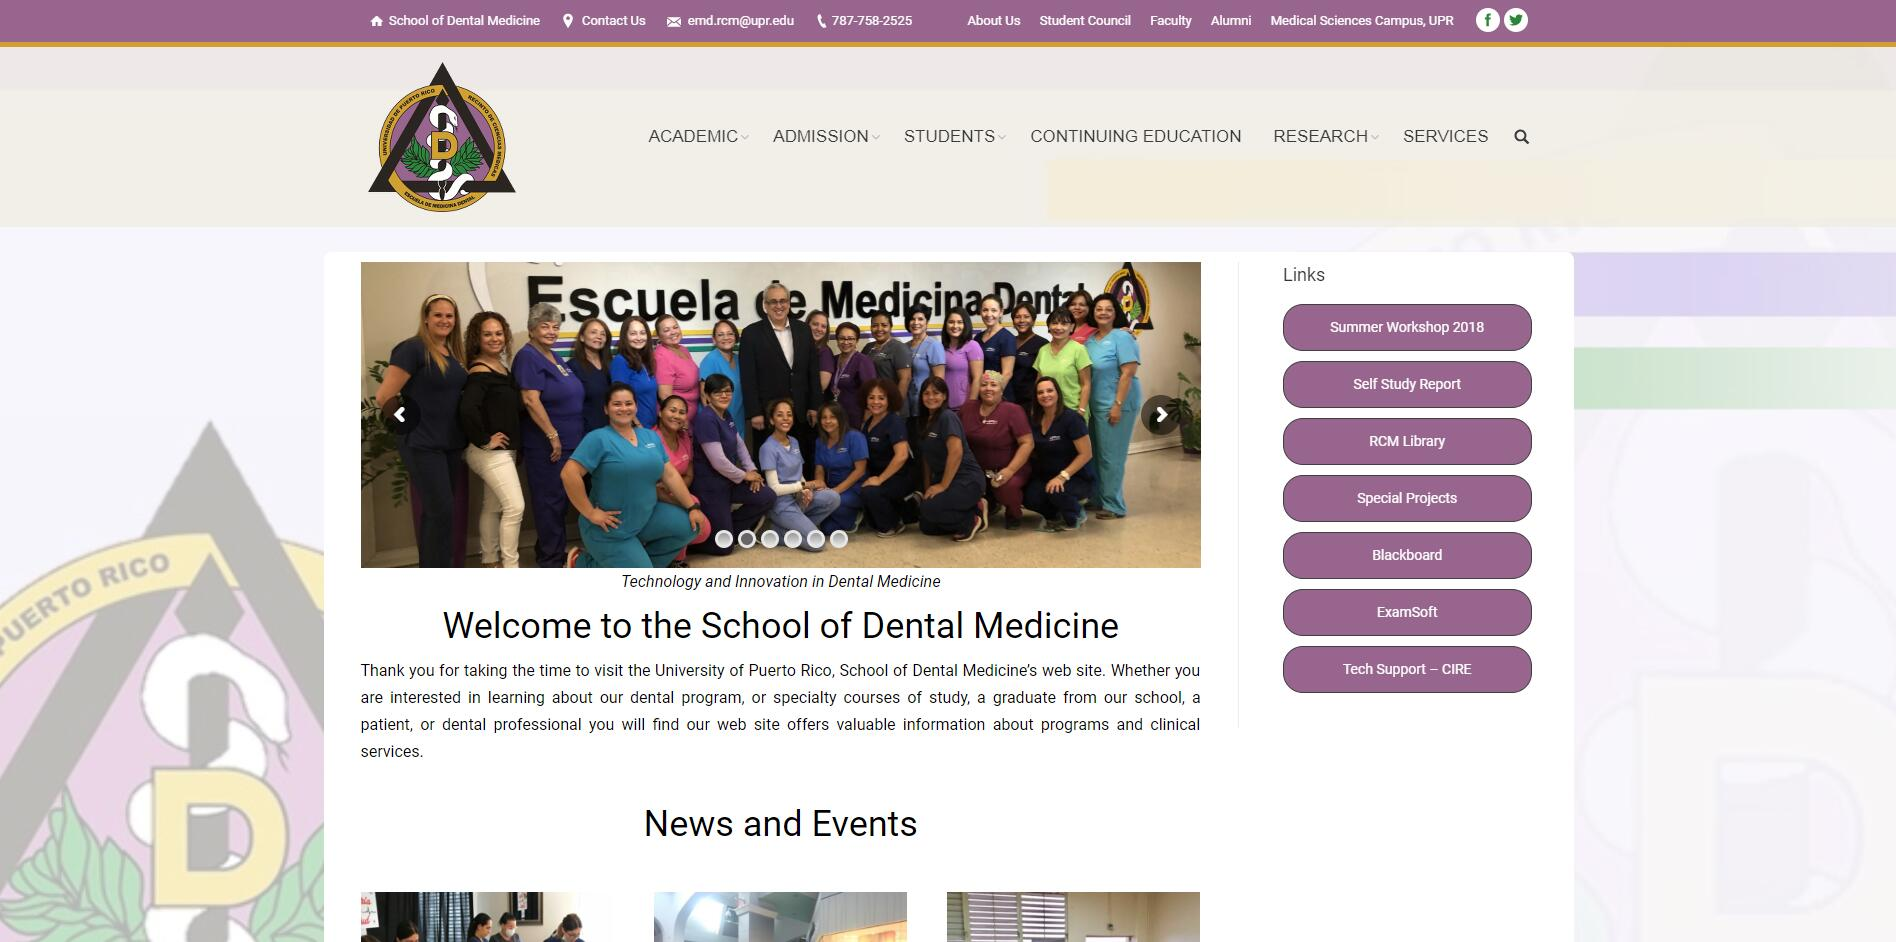 University of Puerto Rico School of Dentistry